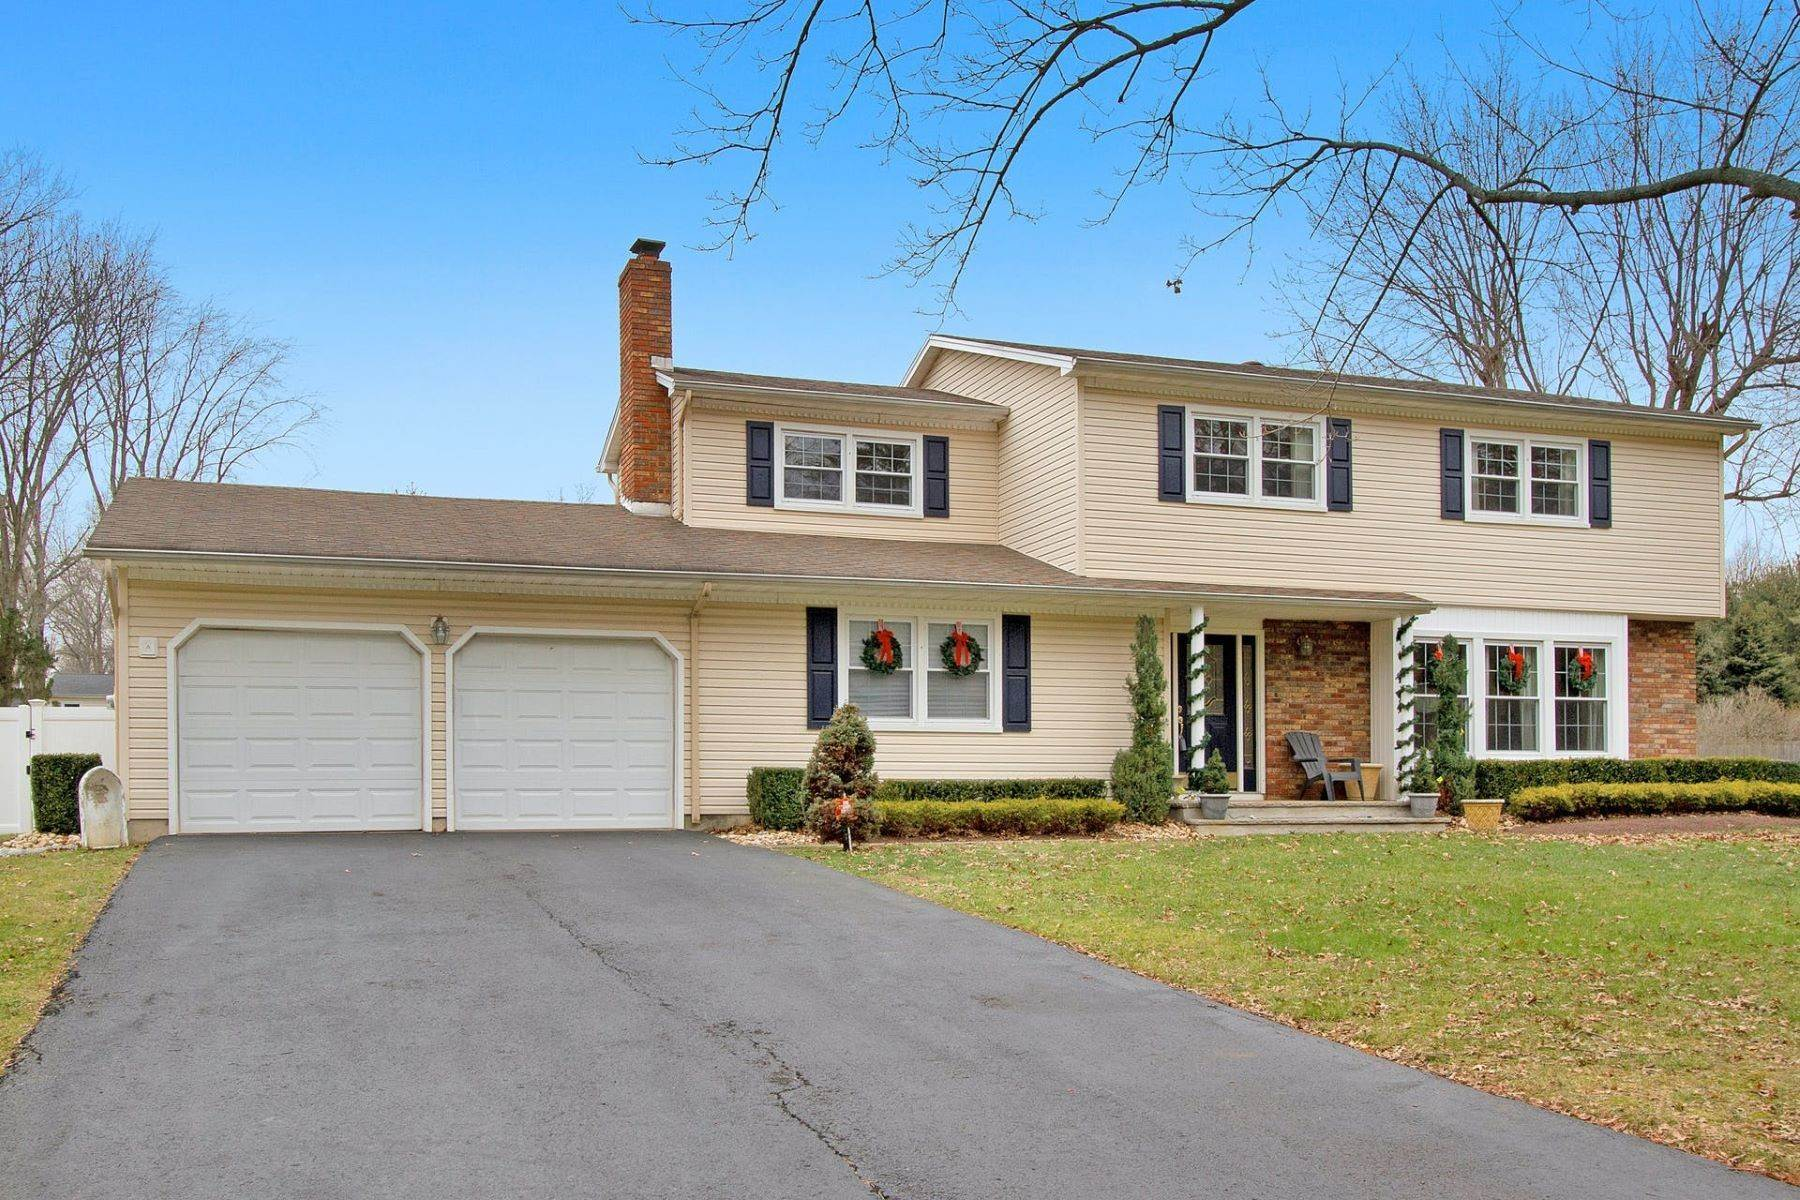 Single Family Homes for Sale at Delightful East Freehold Colonial 112 Sherwood Drive Freehold, New Jersey 07728 United States